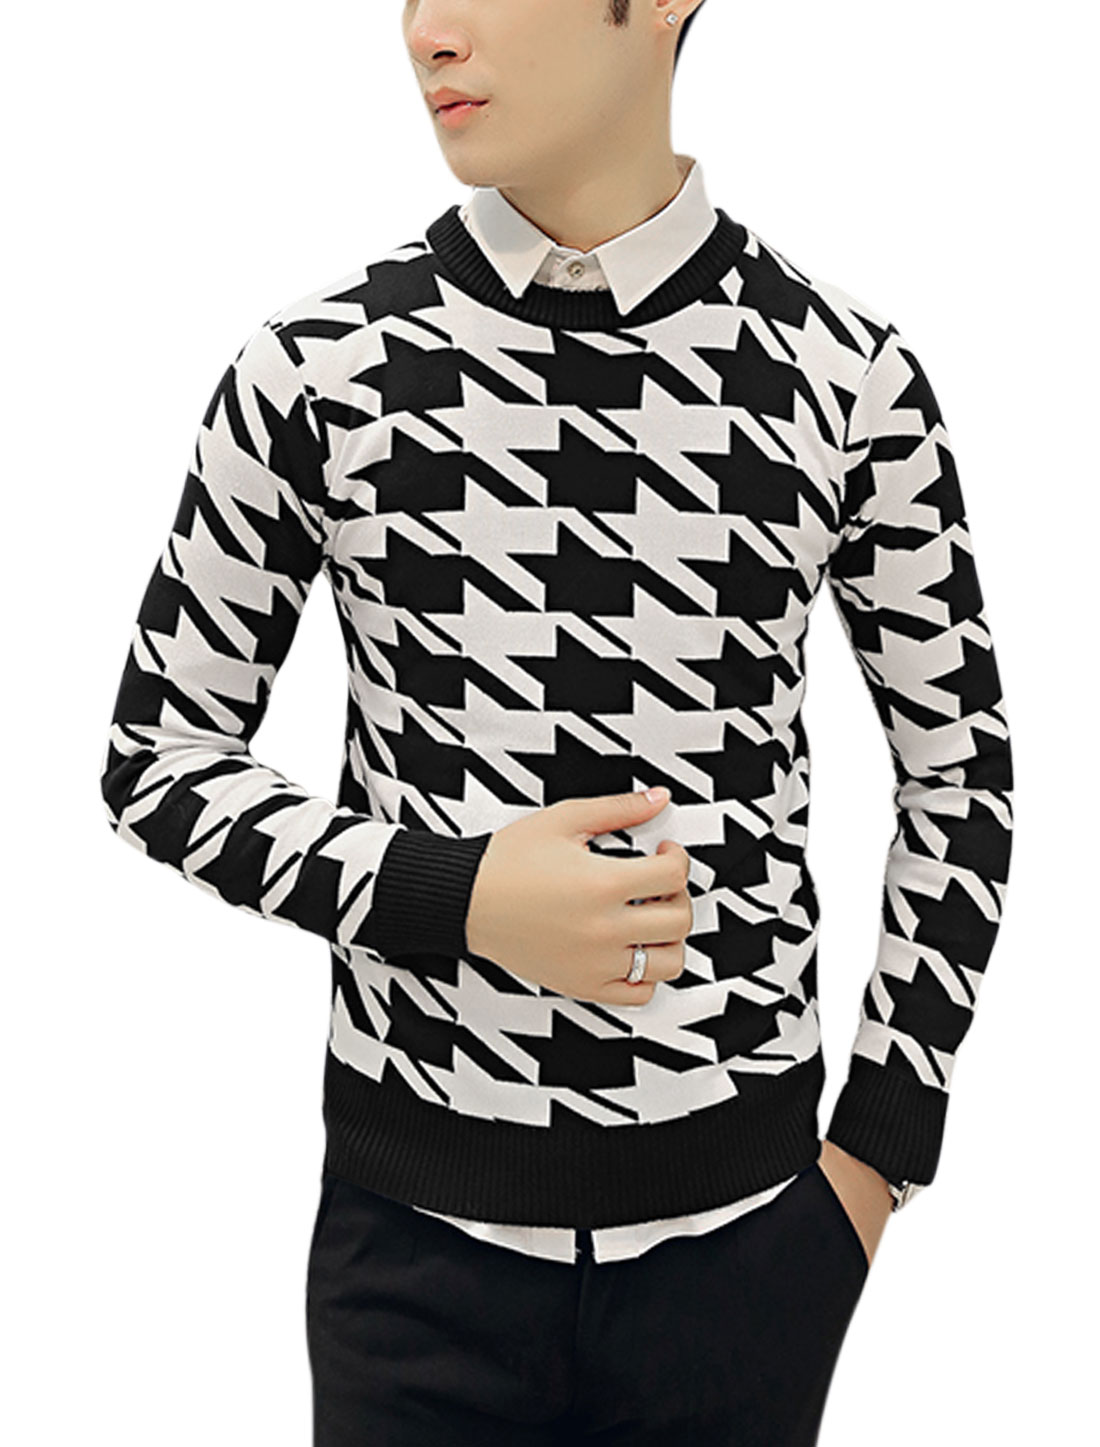 Man Houndstooth Long Sleeve Cozy Fit Black White Knit Shirt S